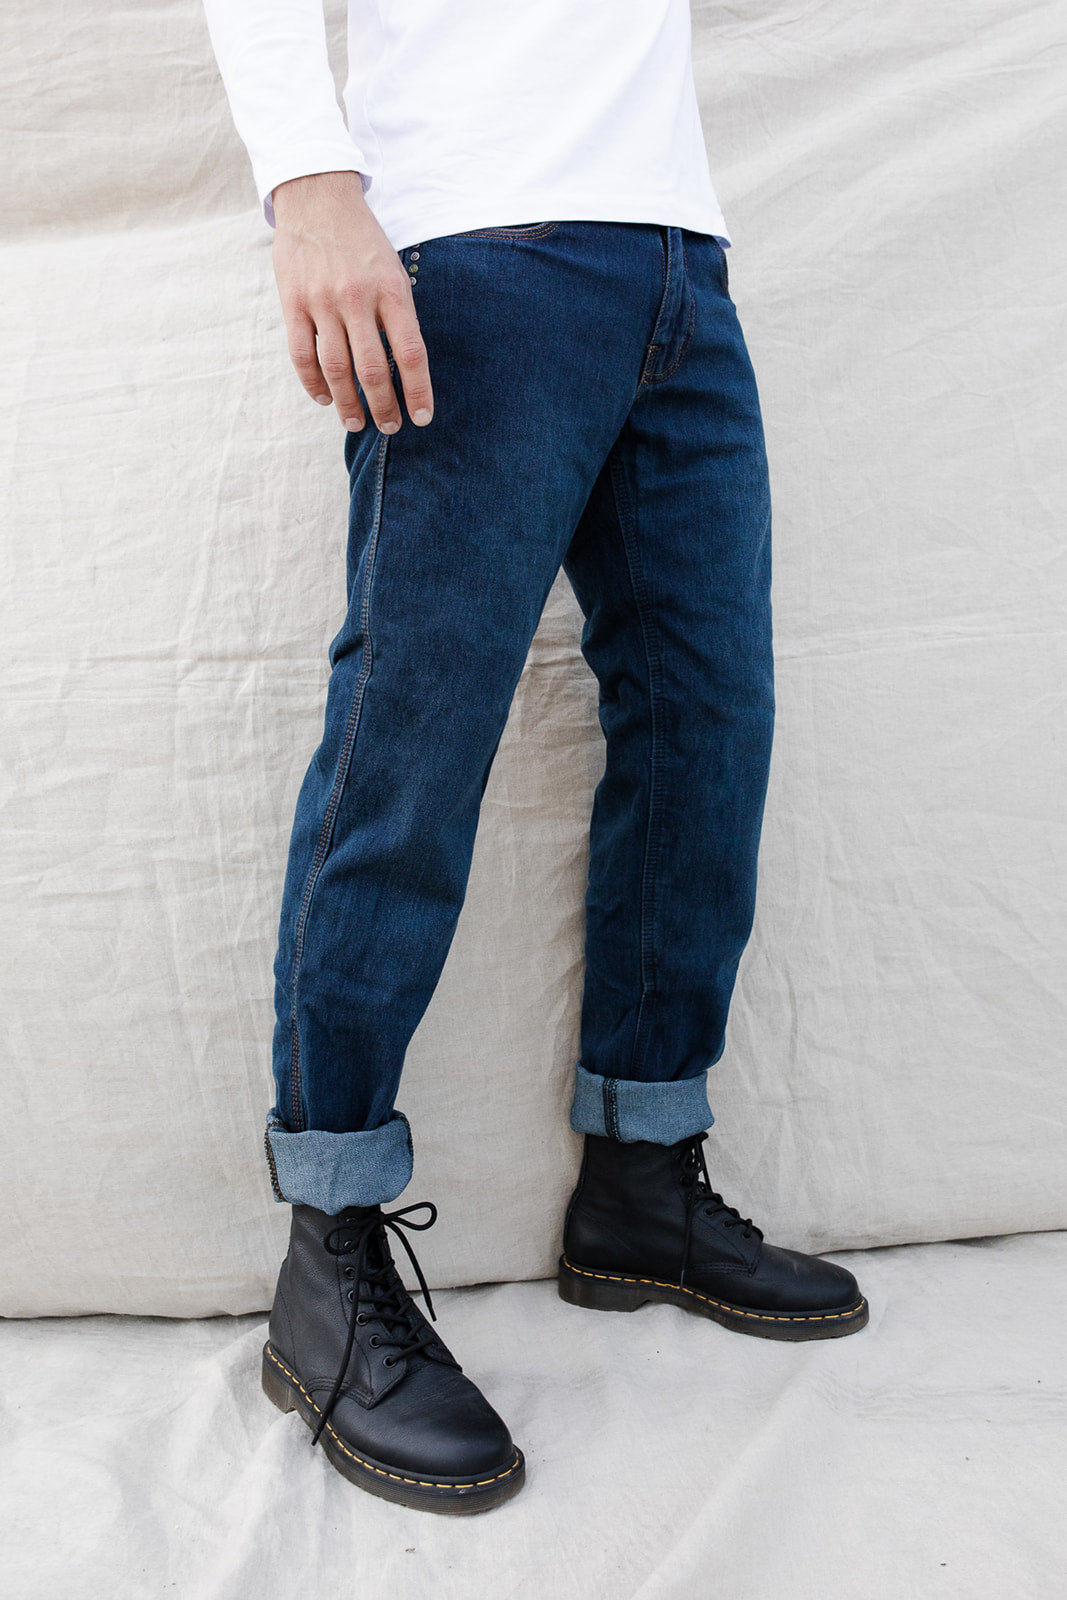 Florida Washed Blue Jeans - Regular - Kevlar®